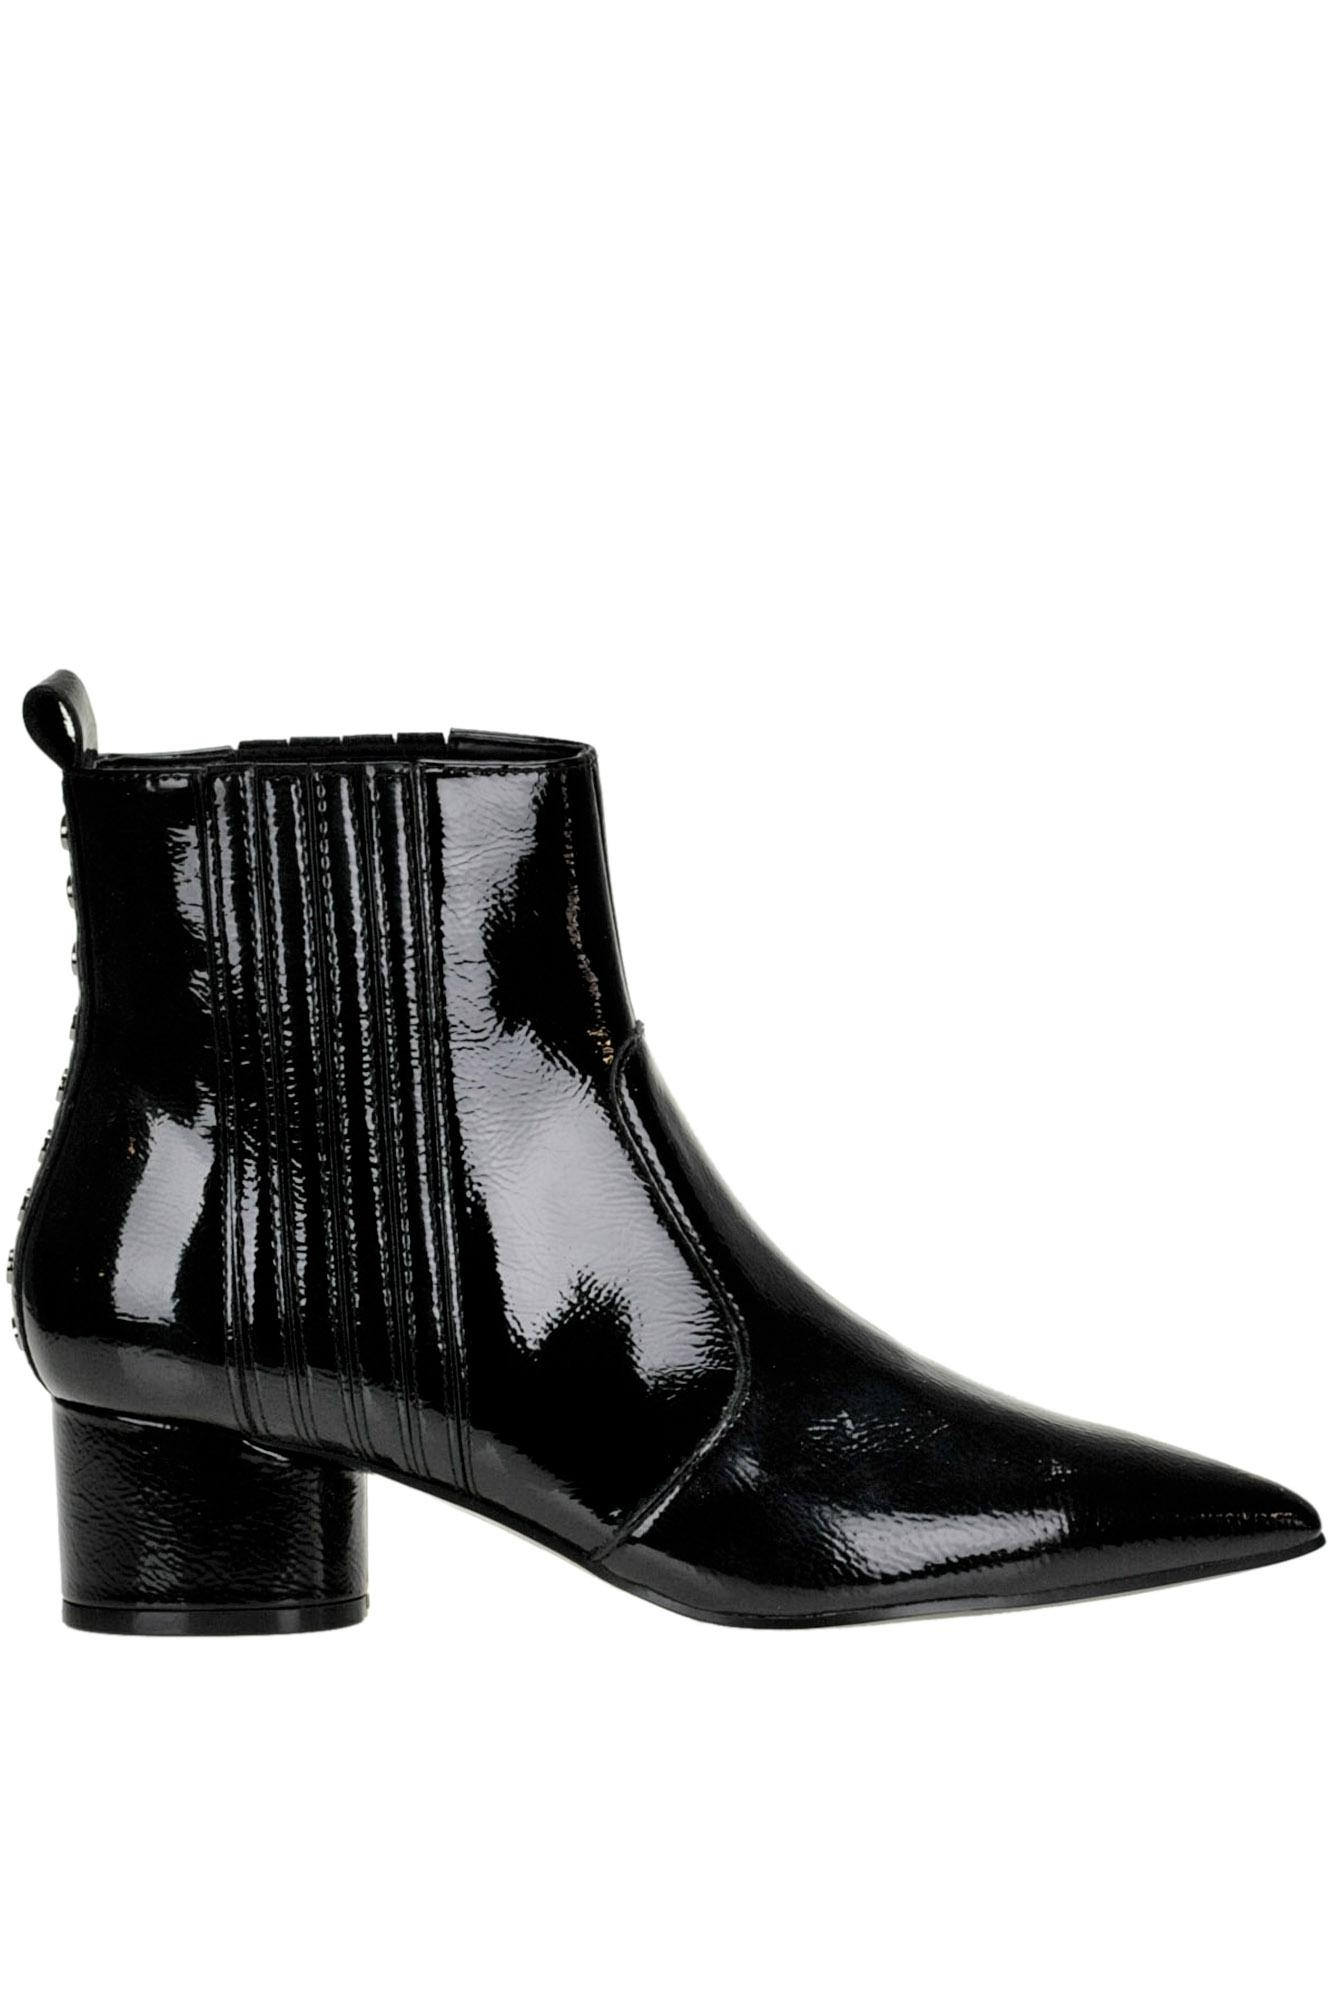 Kylie Laila Patent-leather Ankle-boots